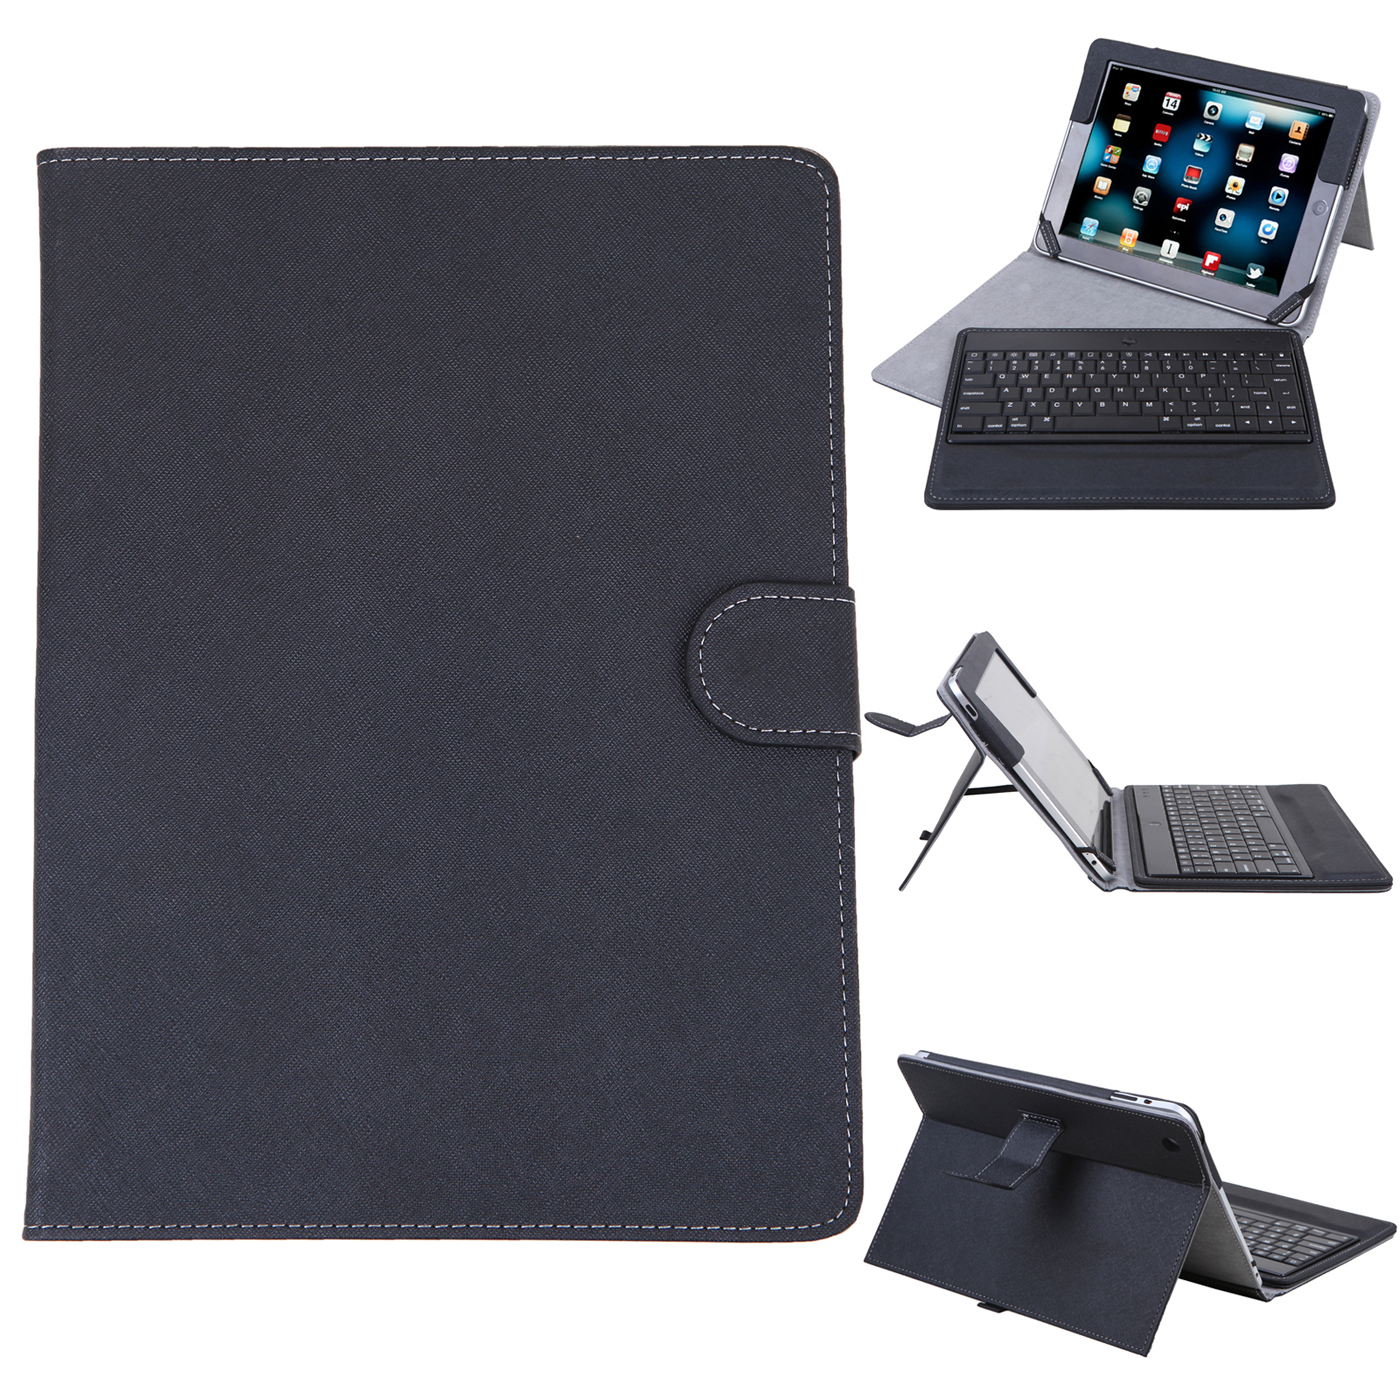 HDE iPad 2 iPad 3 iPad 4 Bluetooth Keyboard Case Leather Folio Magnetic Cover for 2nd 3rd 4th Generation Apple iPad (Black)